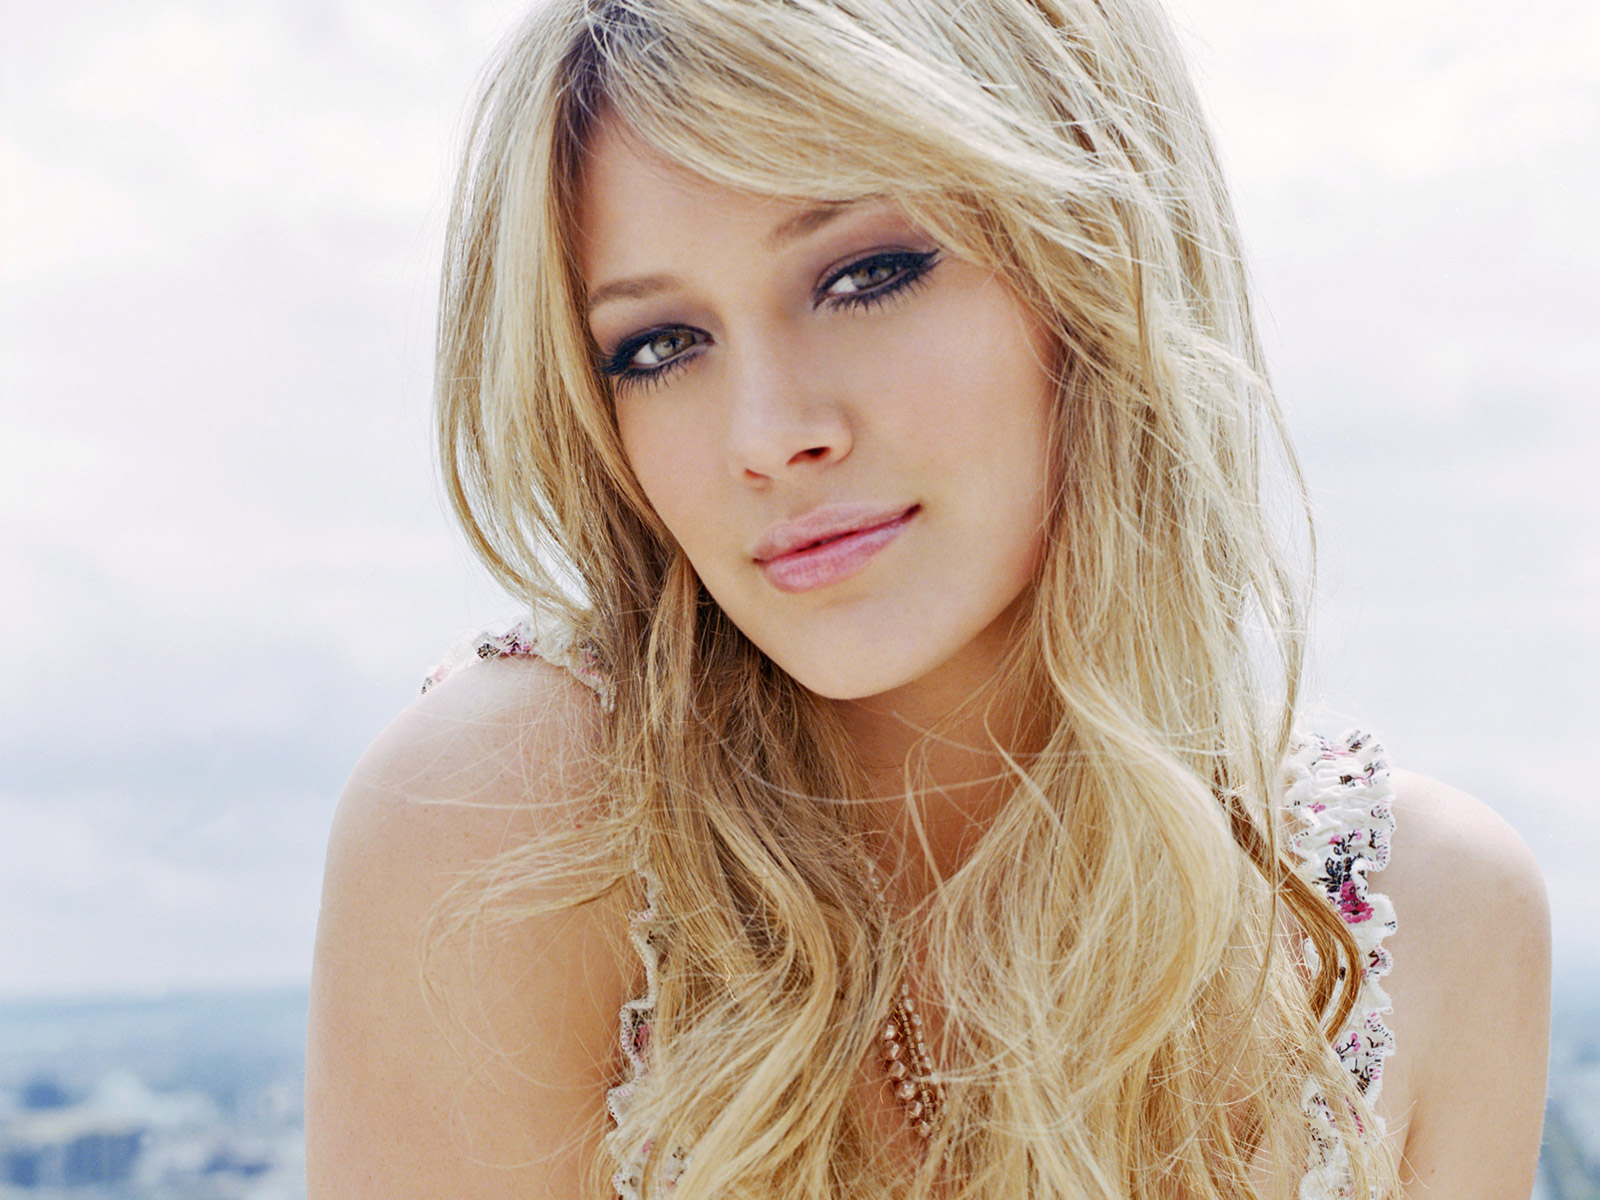 http://1.bp.blogspot.com/-jseIAsqgtCU/Ttb-B5KT1LI/AAAAAAAAASo/2wtCZnLhcI0/s1600/Hilary-Duff-pictures-desktop-Wallpapers-HD-photo-images-14.jpg